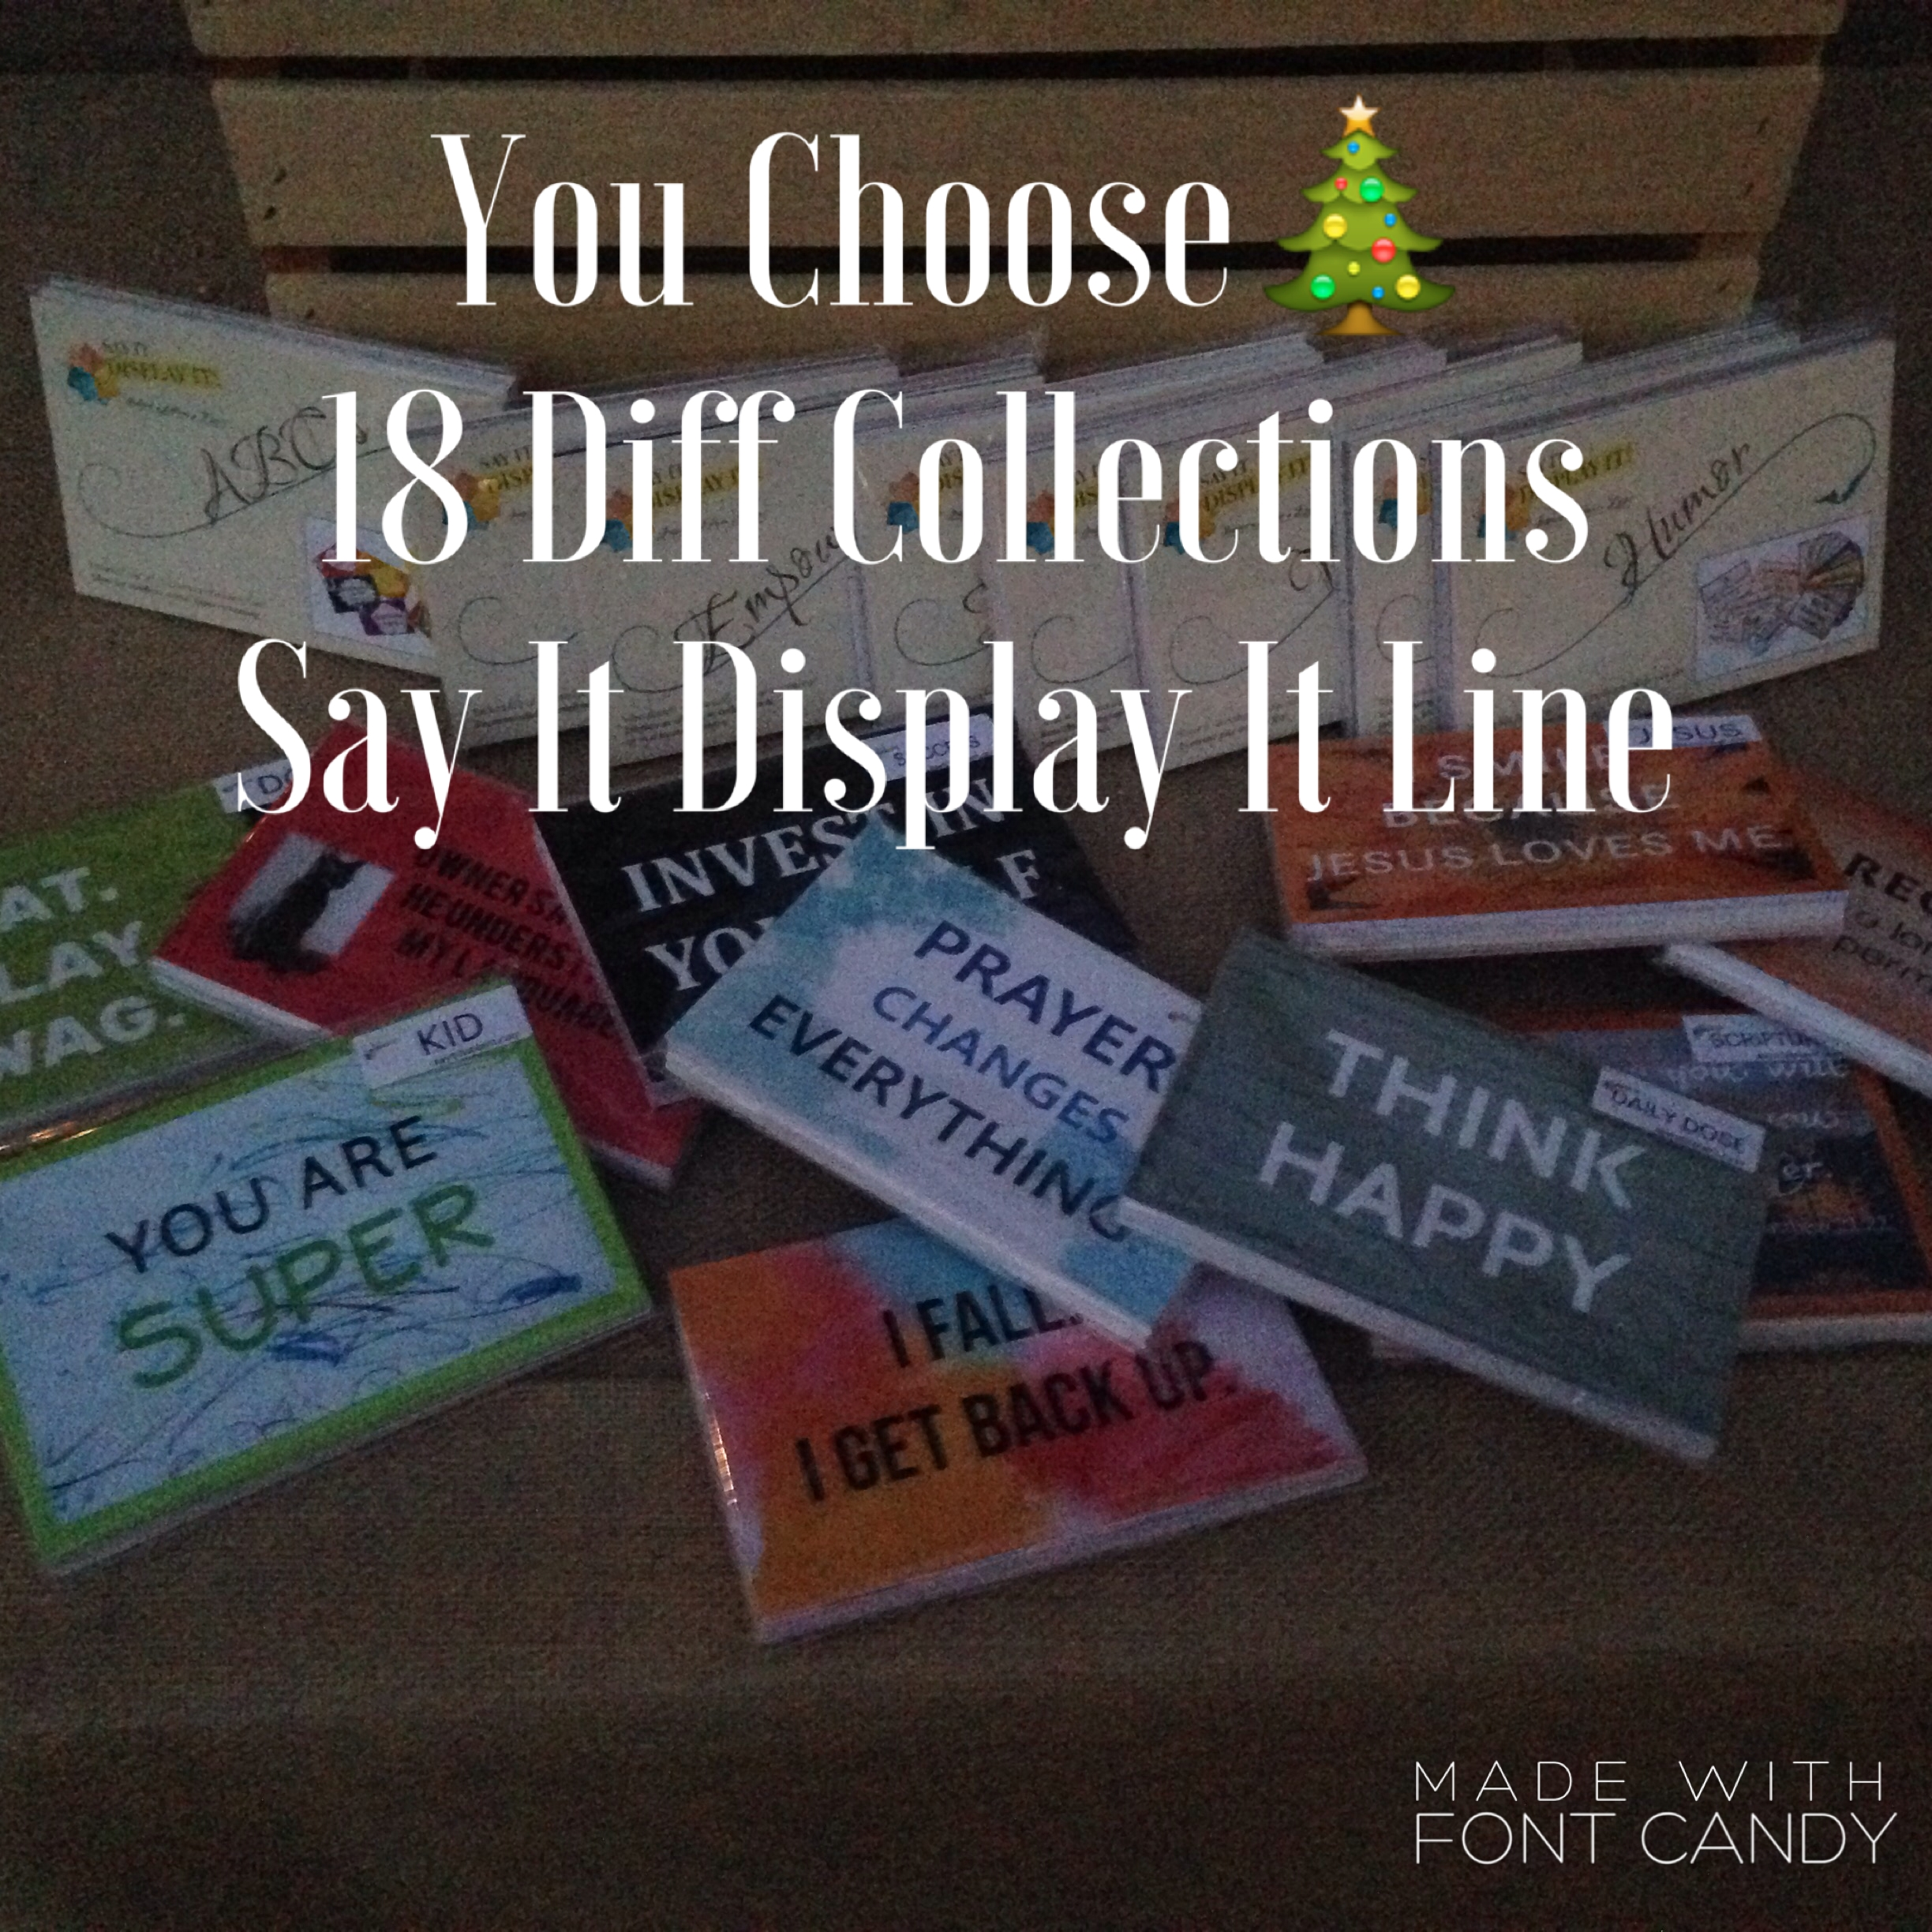 18 Different Collections in the Say It Display It line!